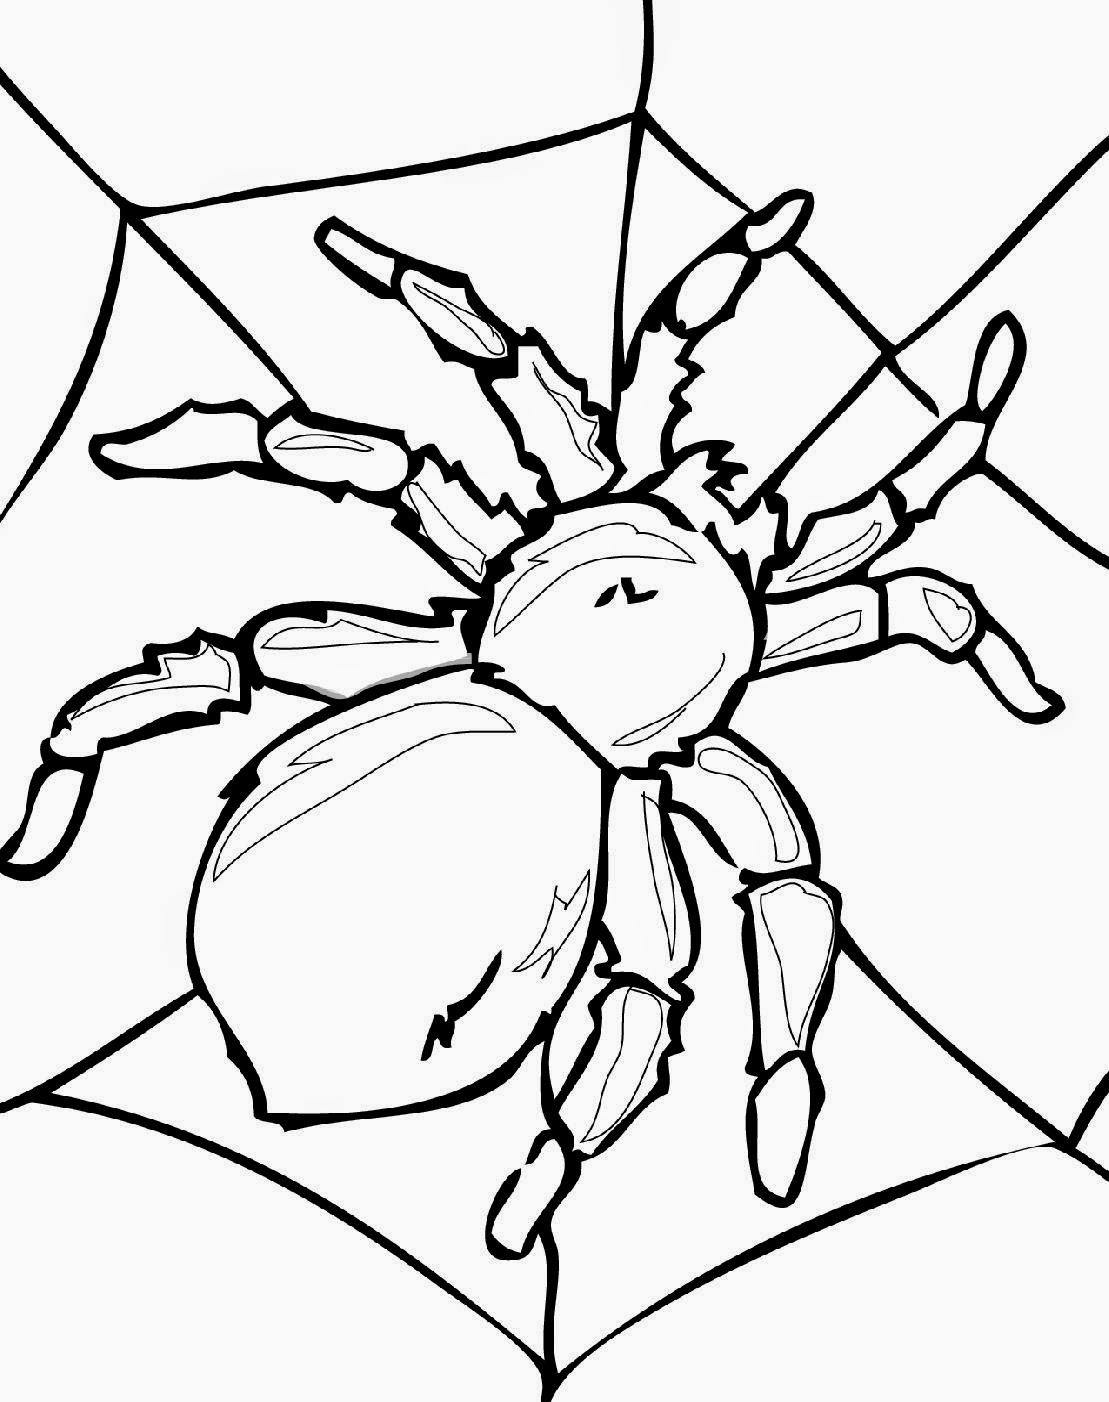 coloring pictures of insects bug coloring pages kidsuki coloring insects of pictures